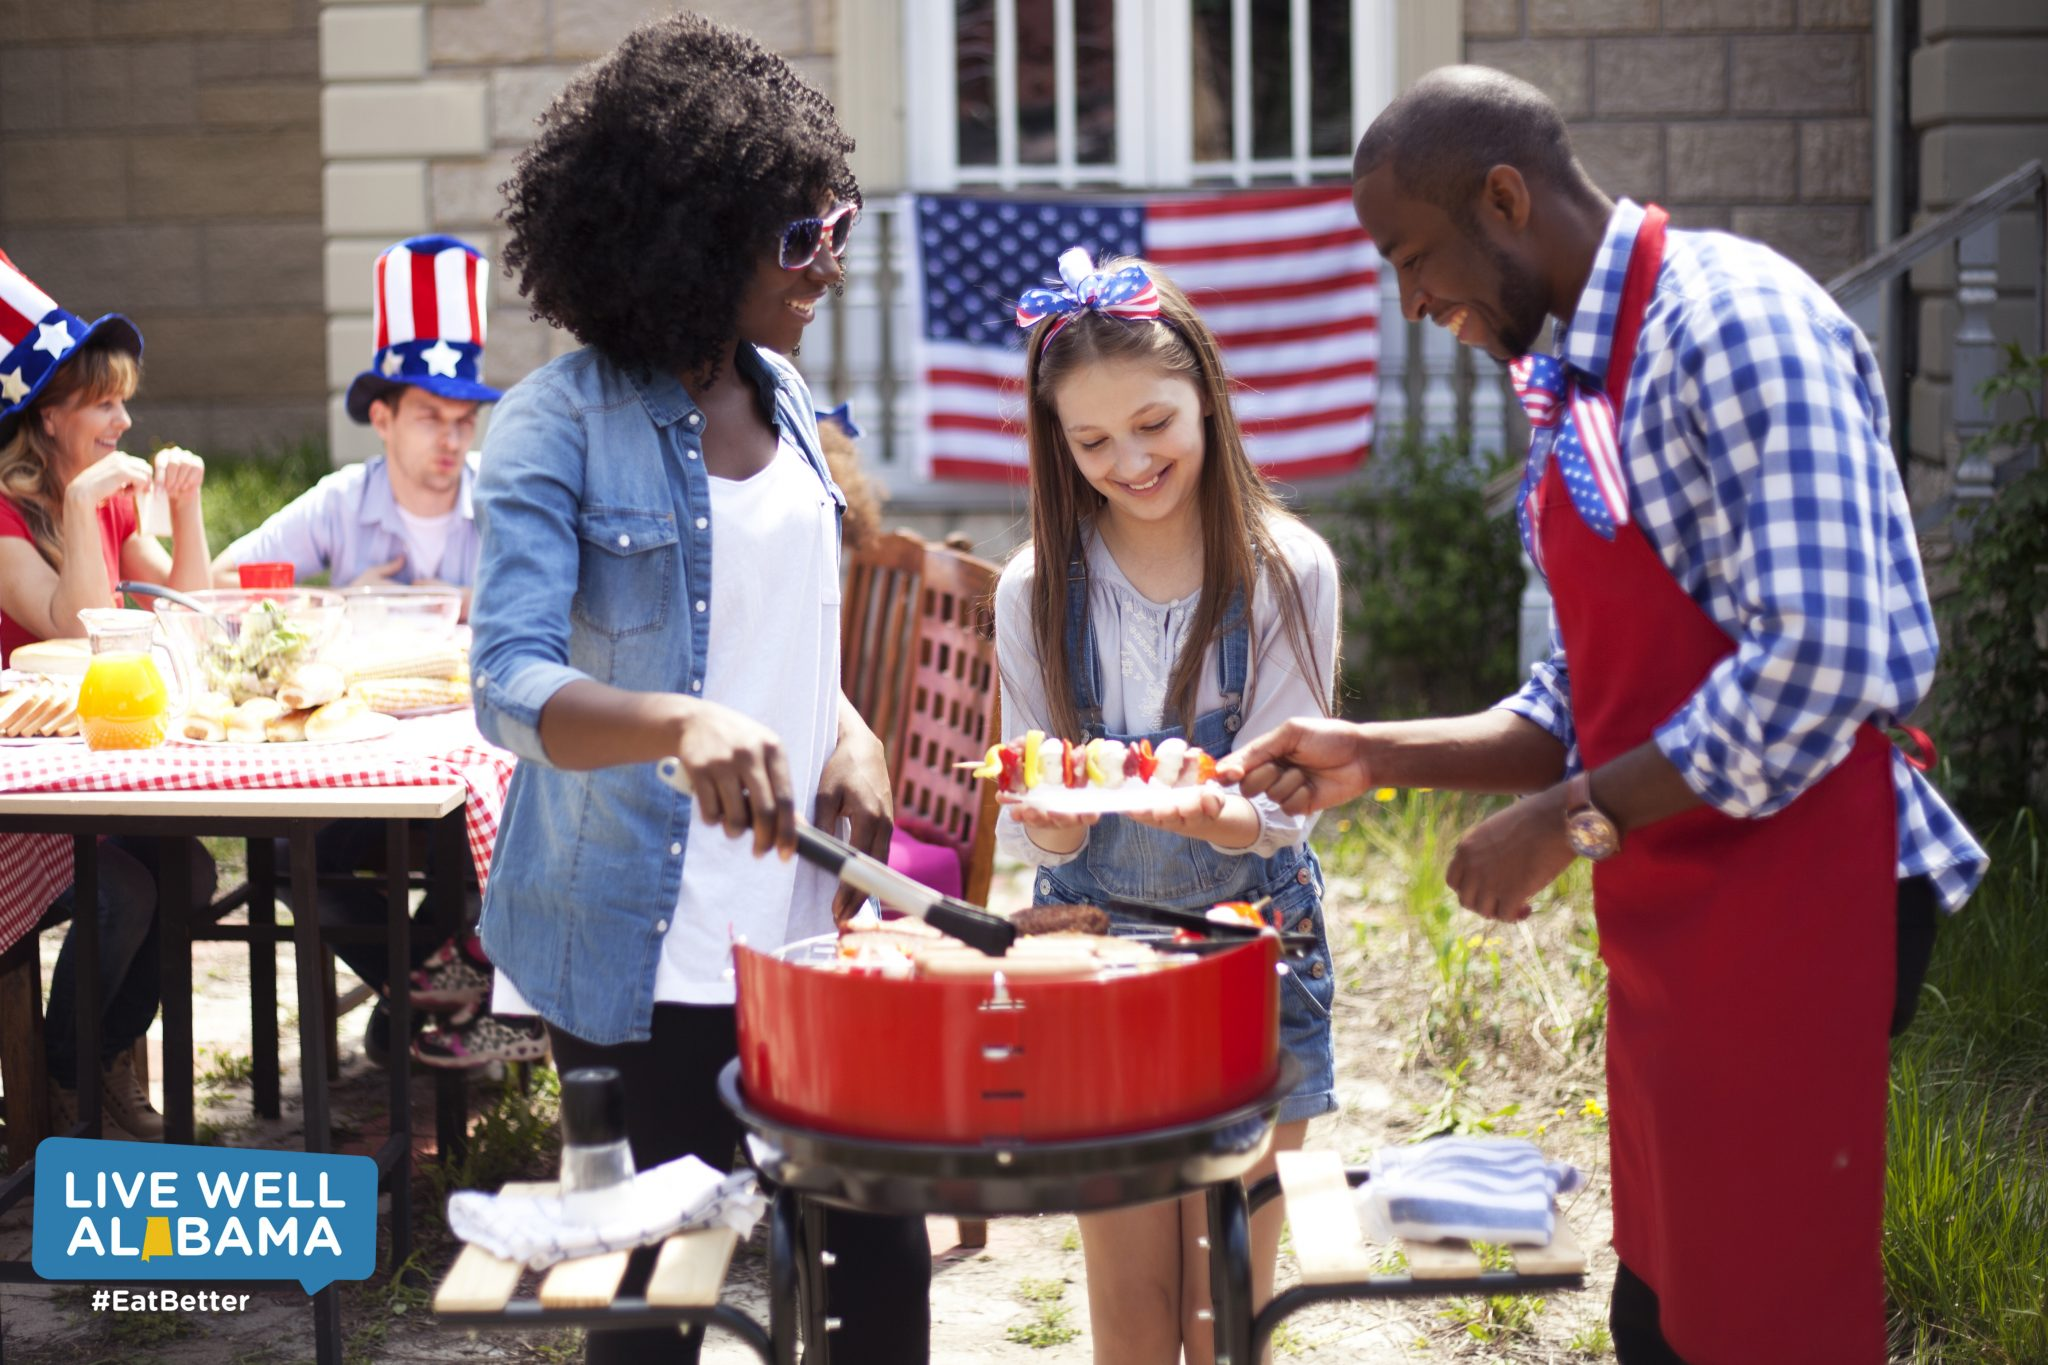 cooking, patriotic clothing, smiling faces